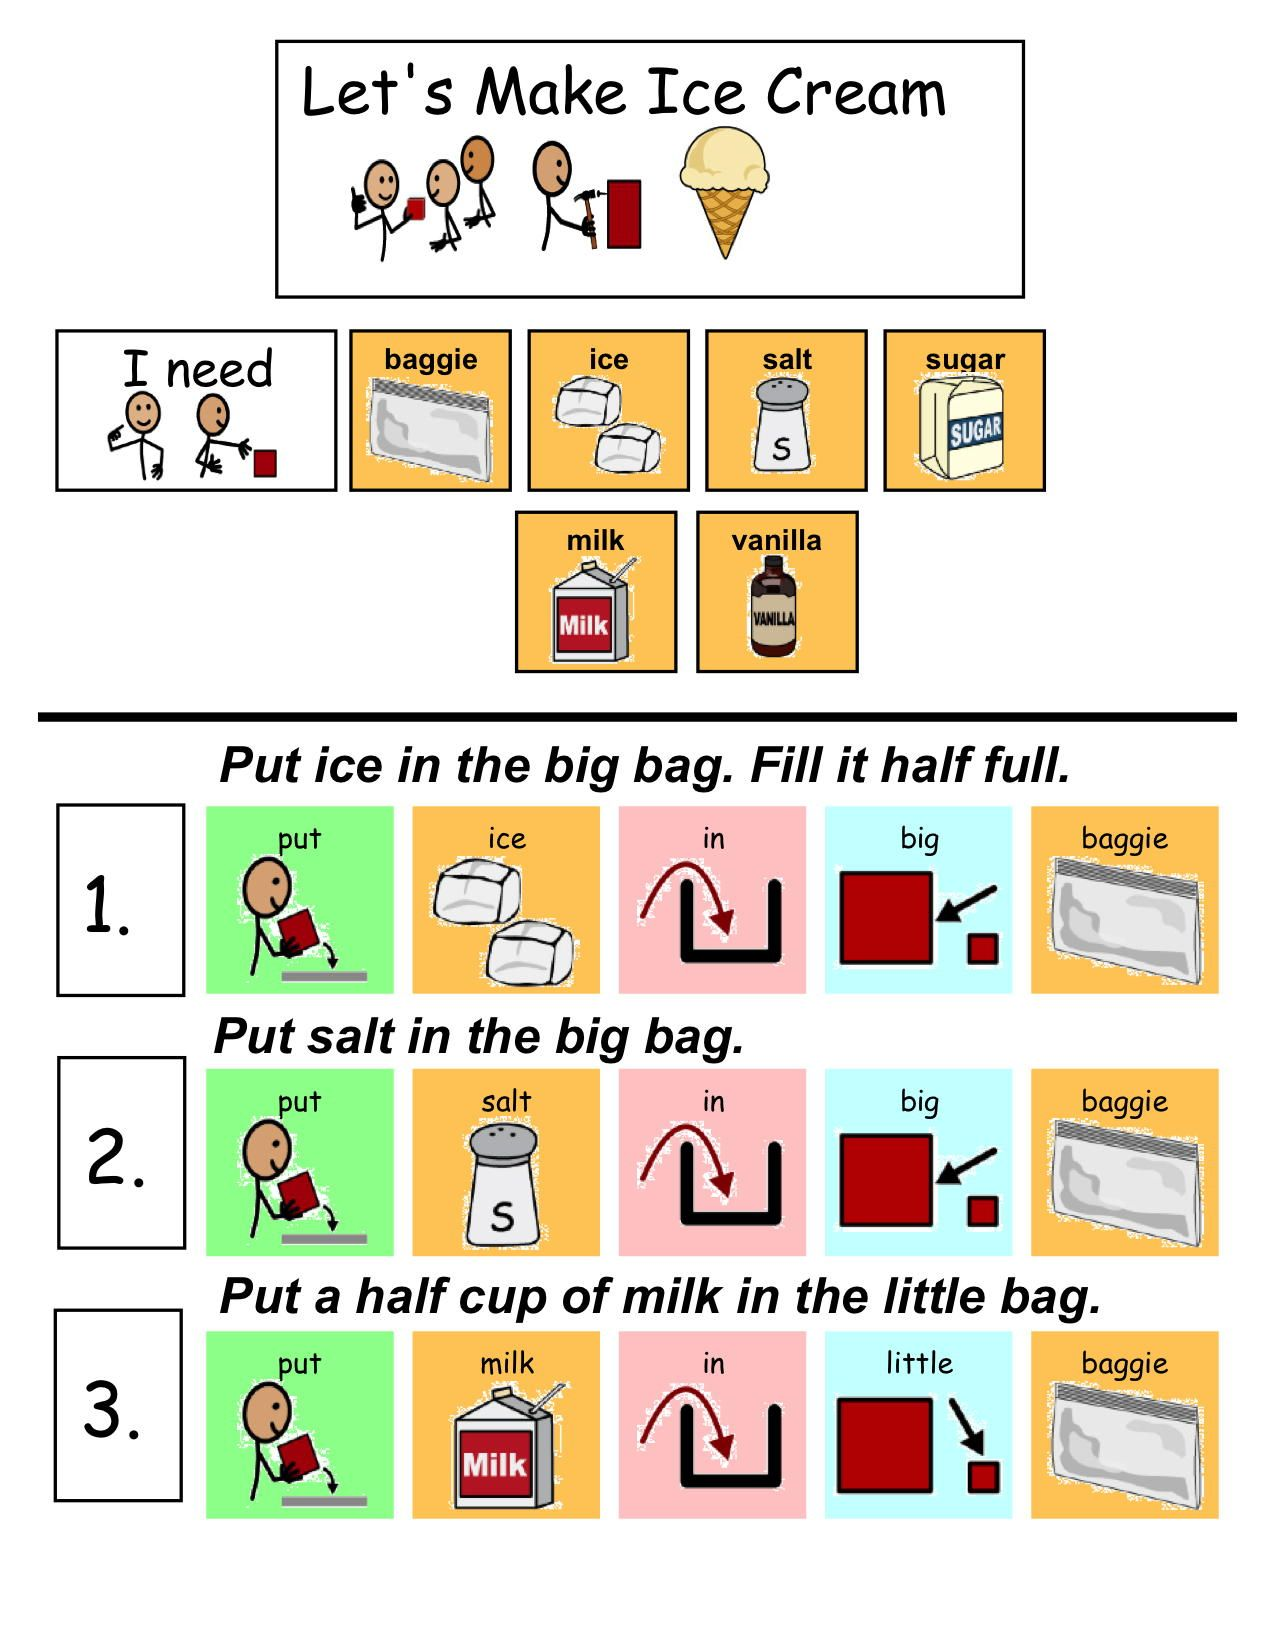 Download this free adapted picture recipe to make ice cream in a bag download this free adapted picture recipe to make ice cream in a bag with your students httptalcaacice20cream20recipepdf ccuart Image collections